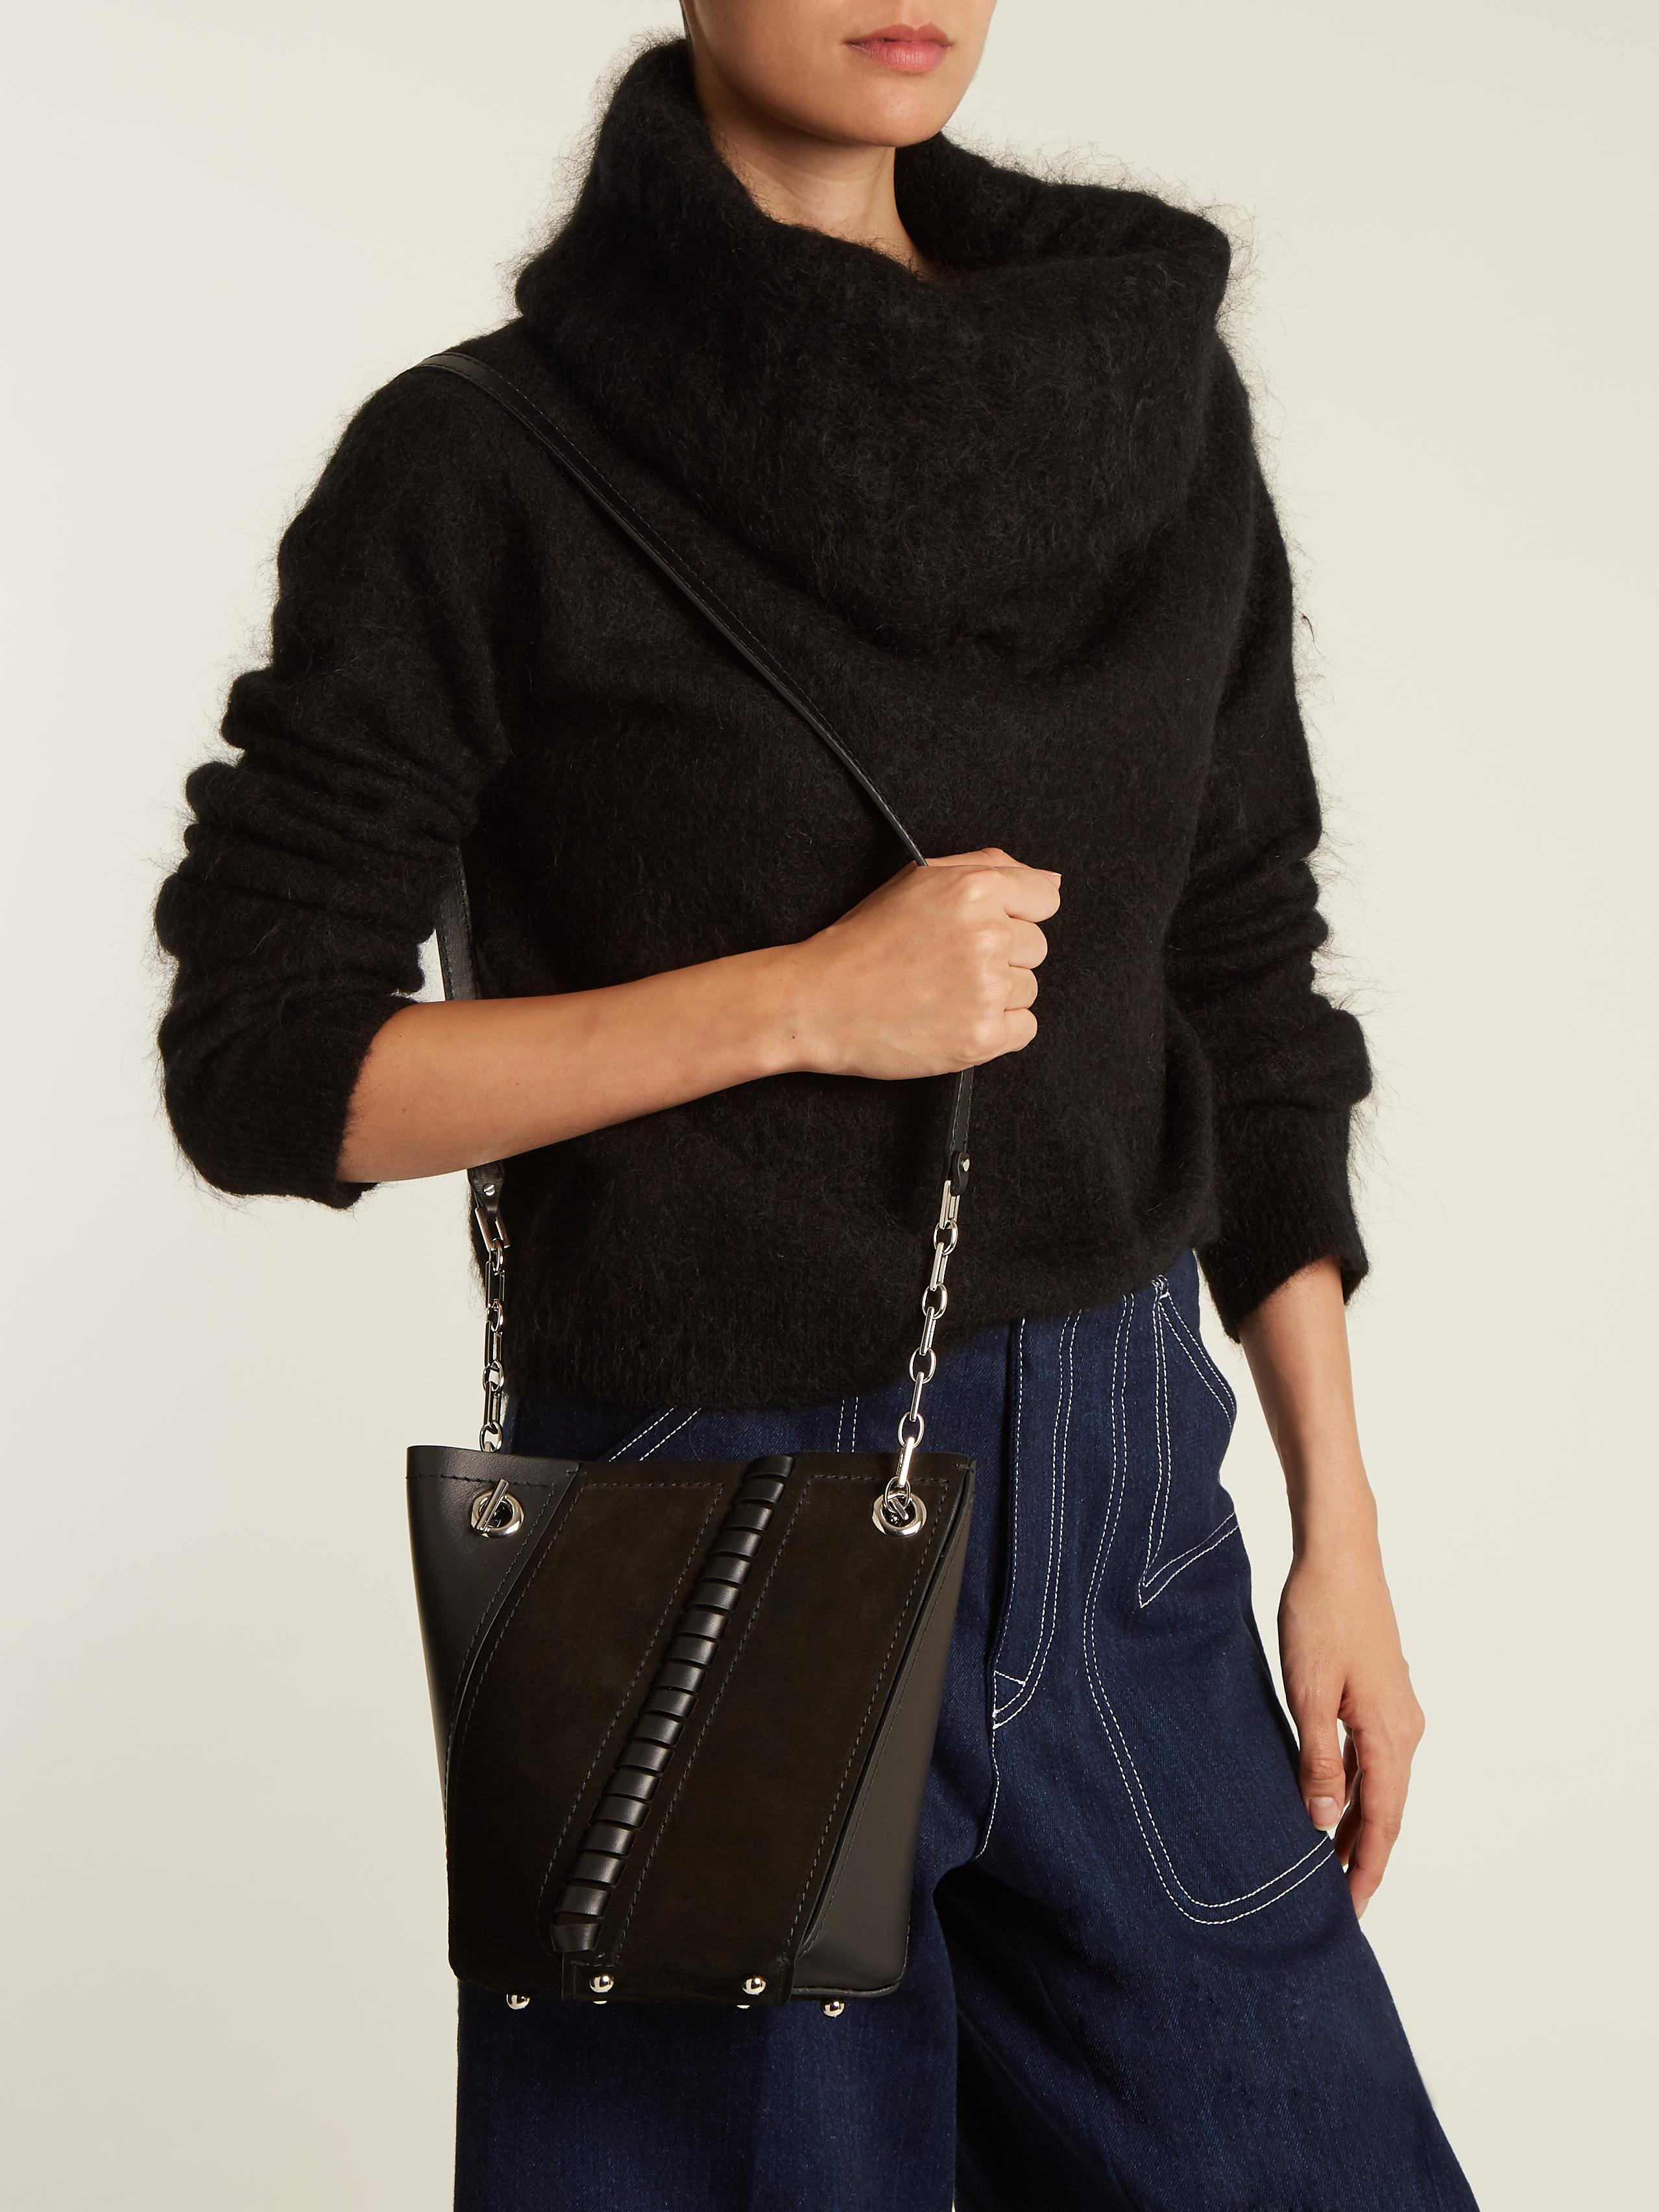 87dfd0d82 Proenza Schouler Hex Mini Suede And Leather Bucket Bag in Black - Lyst